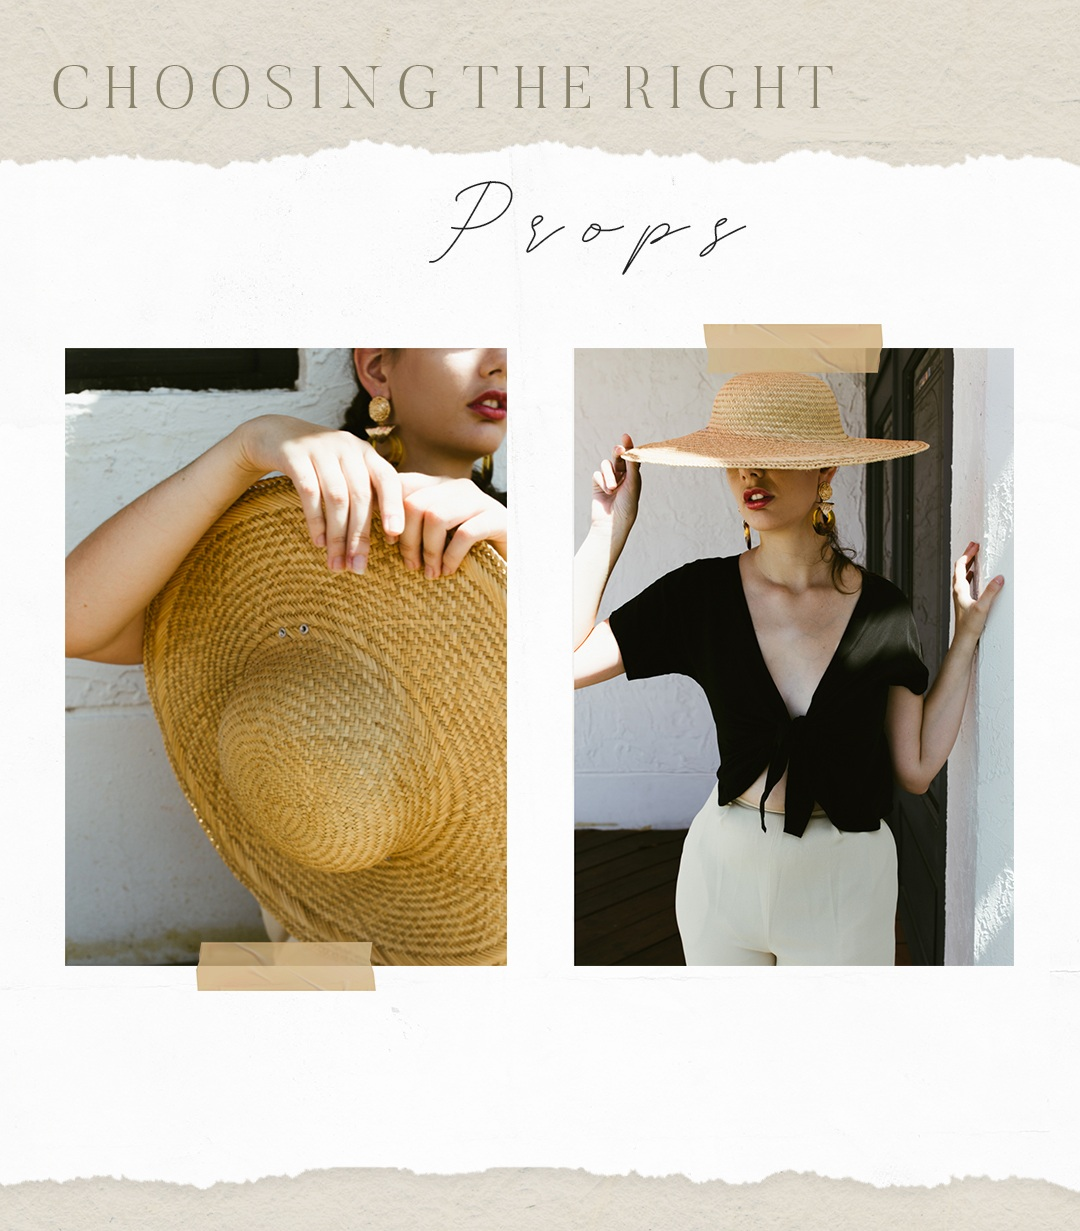 choosing-props-graphic-vaniaelise.jpg